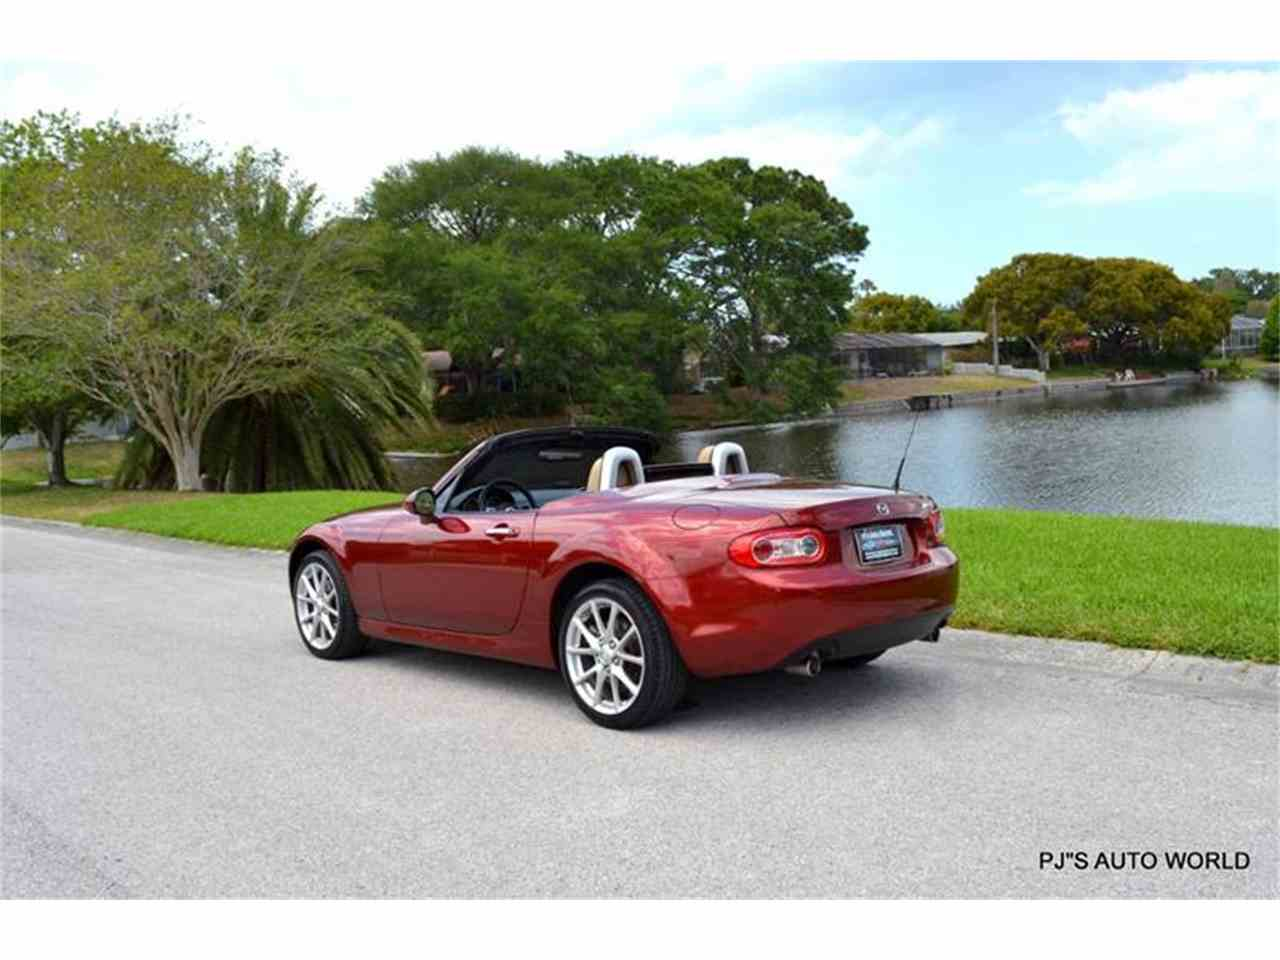 Large Picture of '12 Mazda Miata located in Clearwater Florida - $16,600.00 Offered by PJ's Auto World - L6IJ